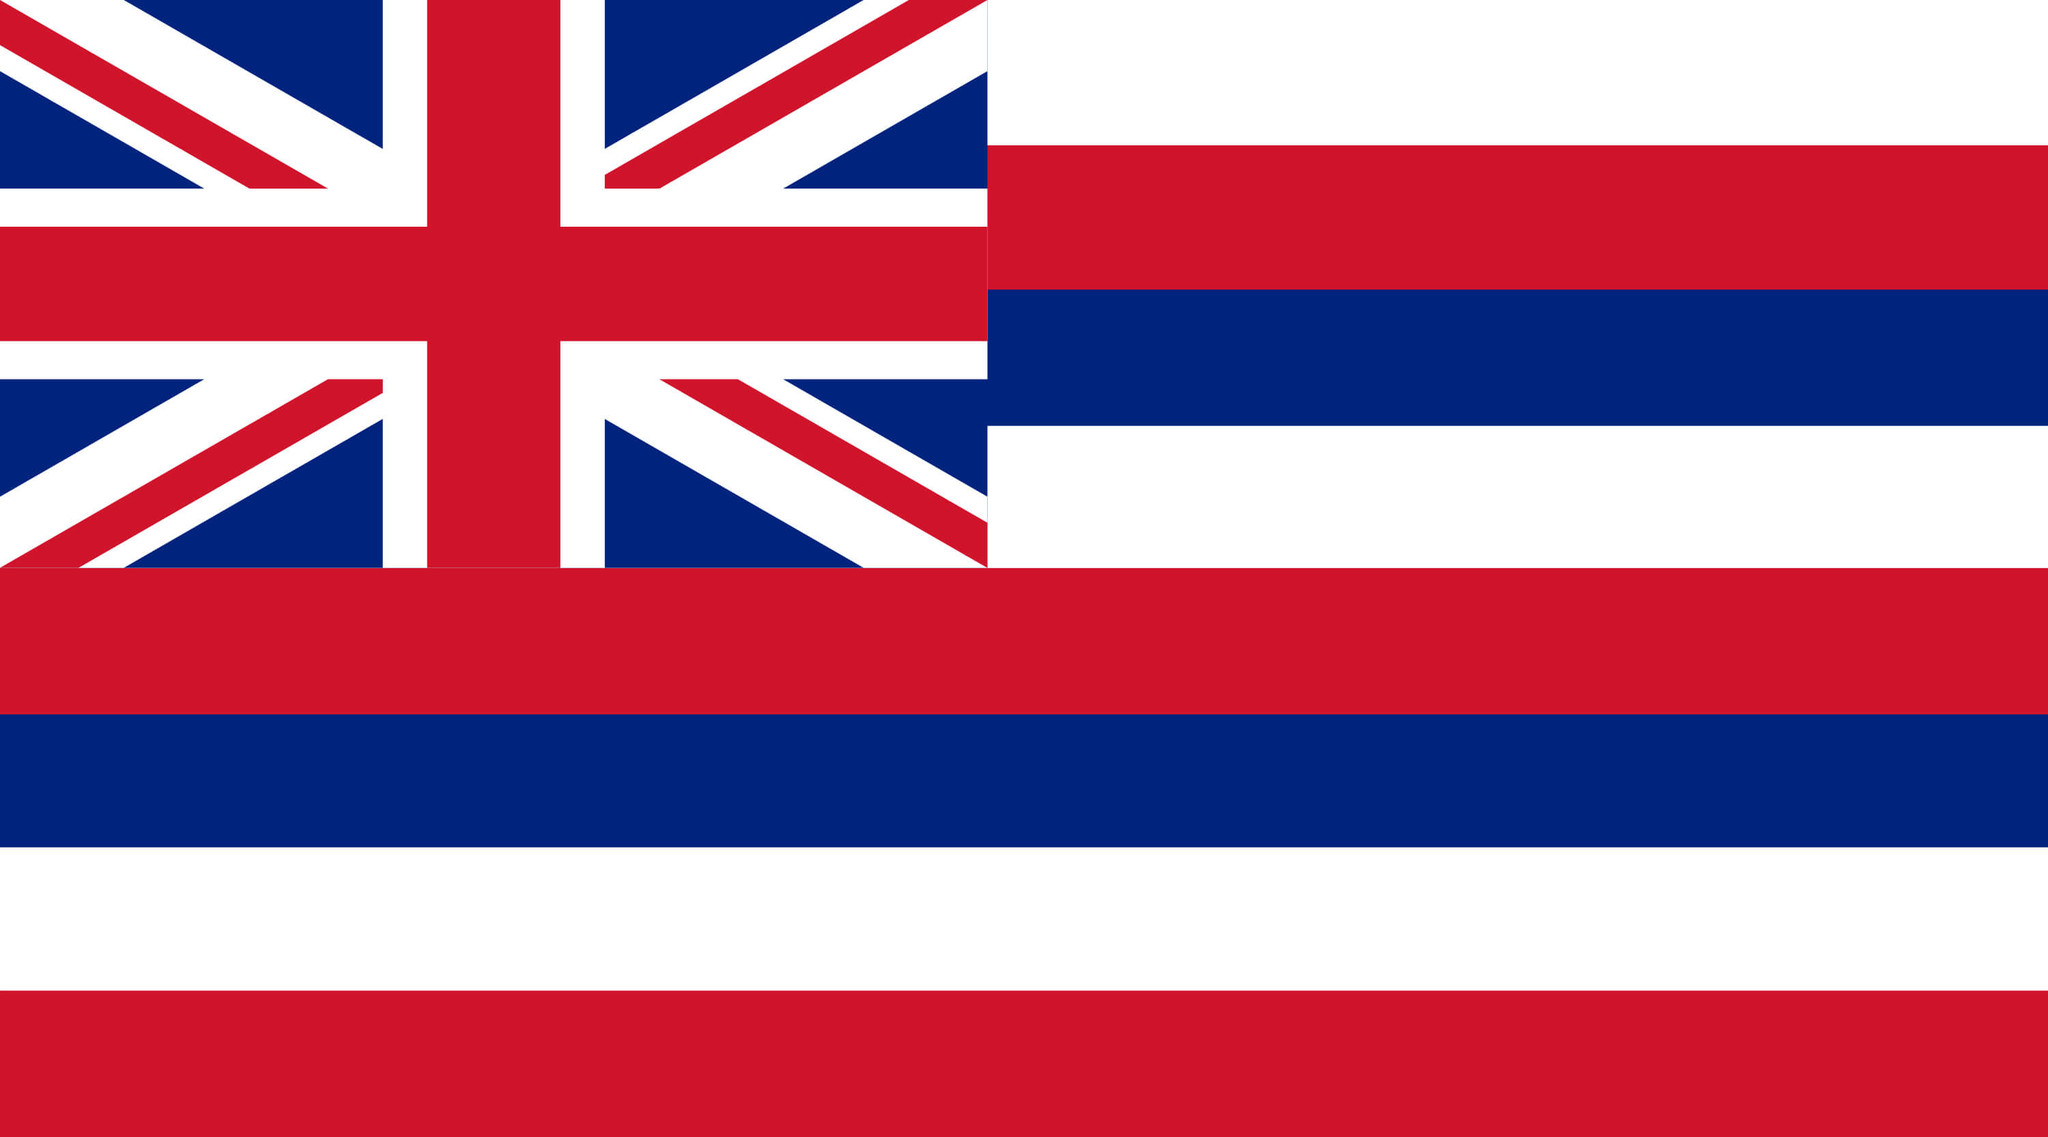 Drapeau d'Hawaii